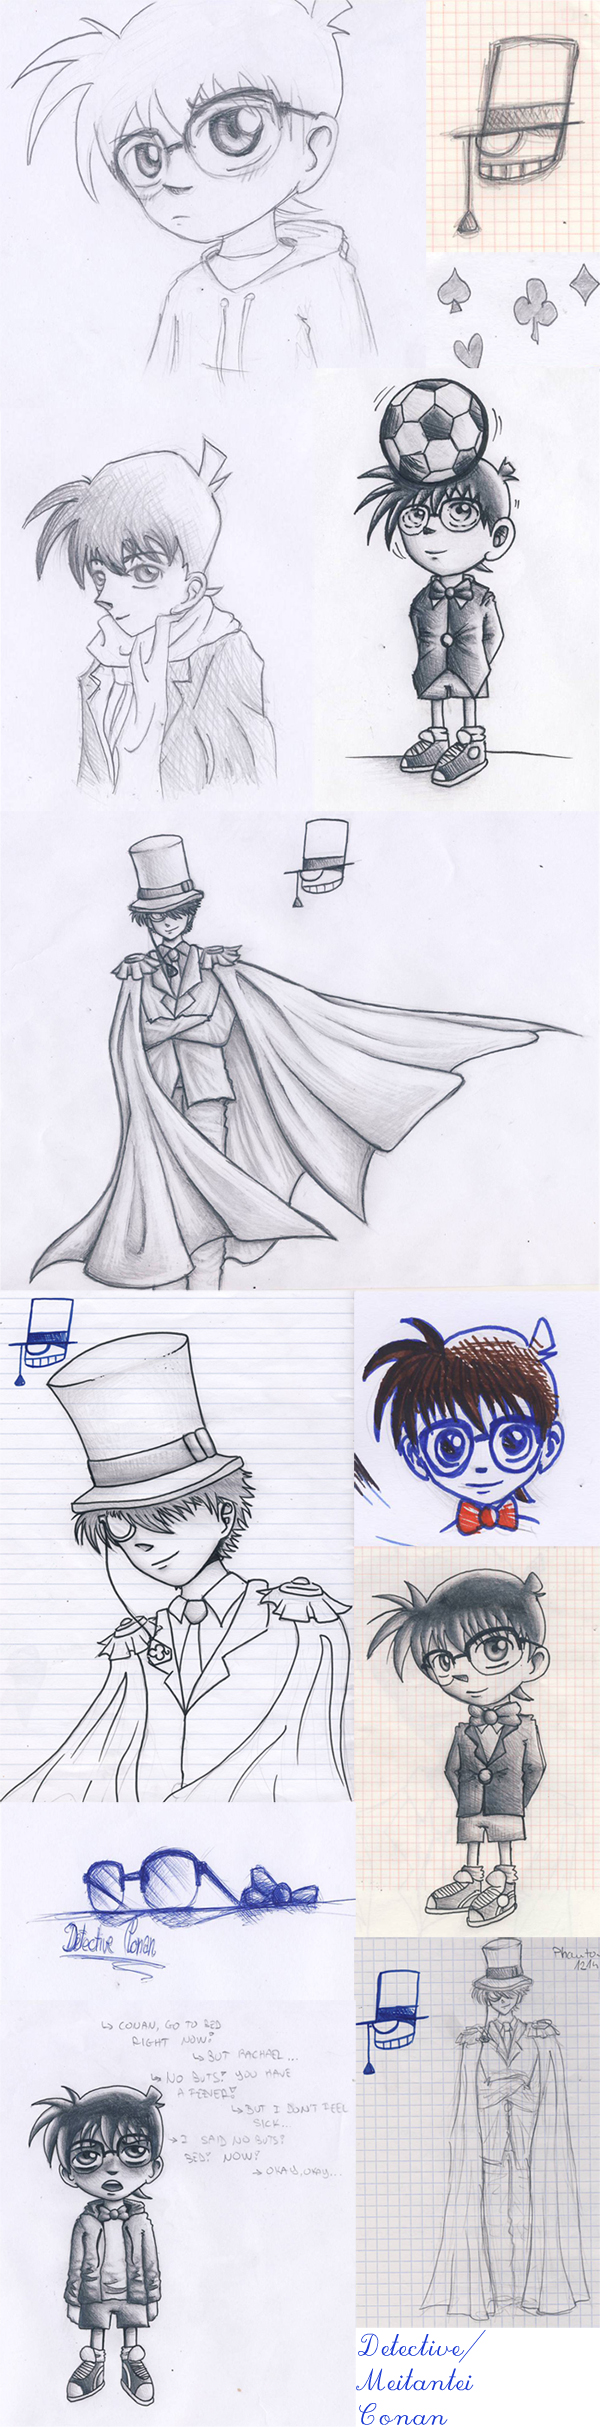 Detective Conan Sketches by bbfan77